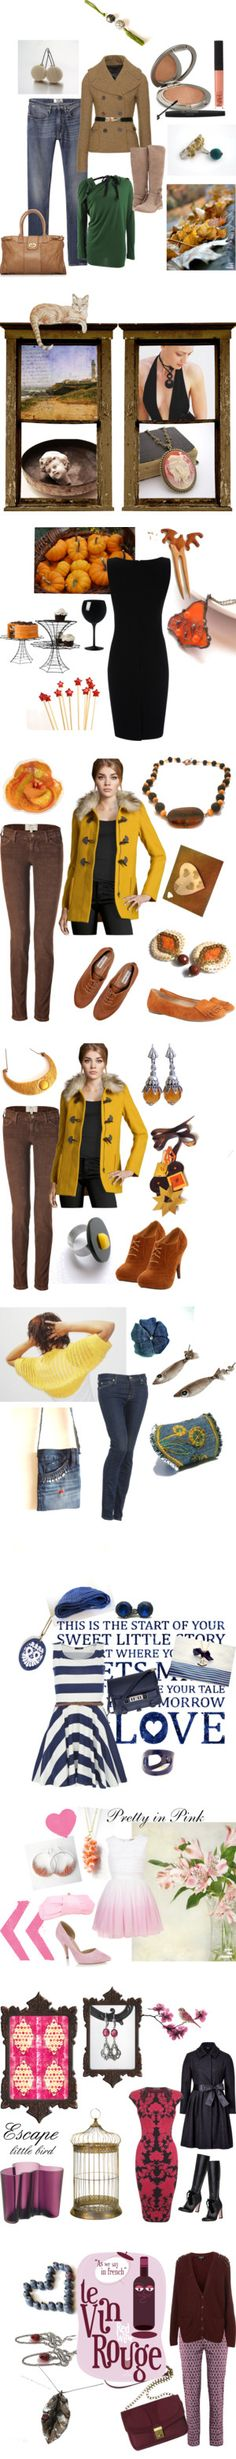 """""""Saturday Style 10 - promotion game - anyone can join"""" by dorijanki on Polyvore"""